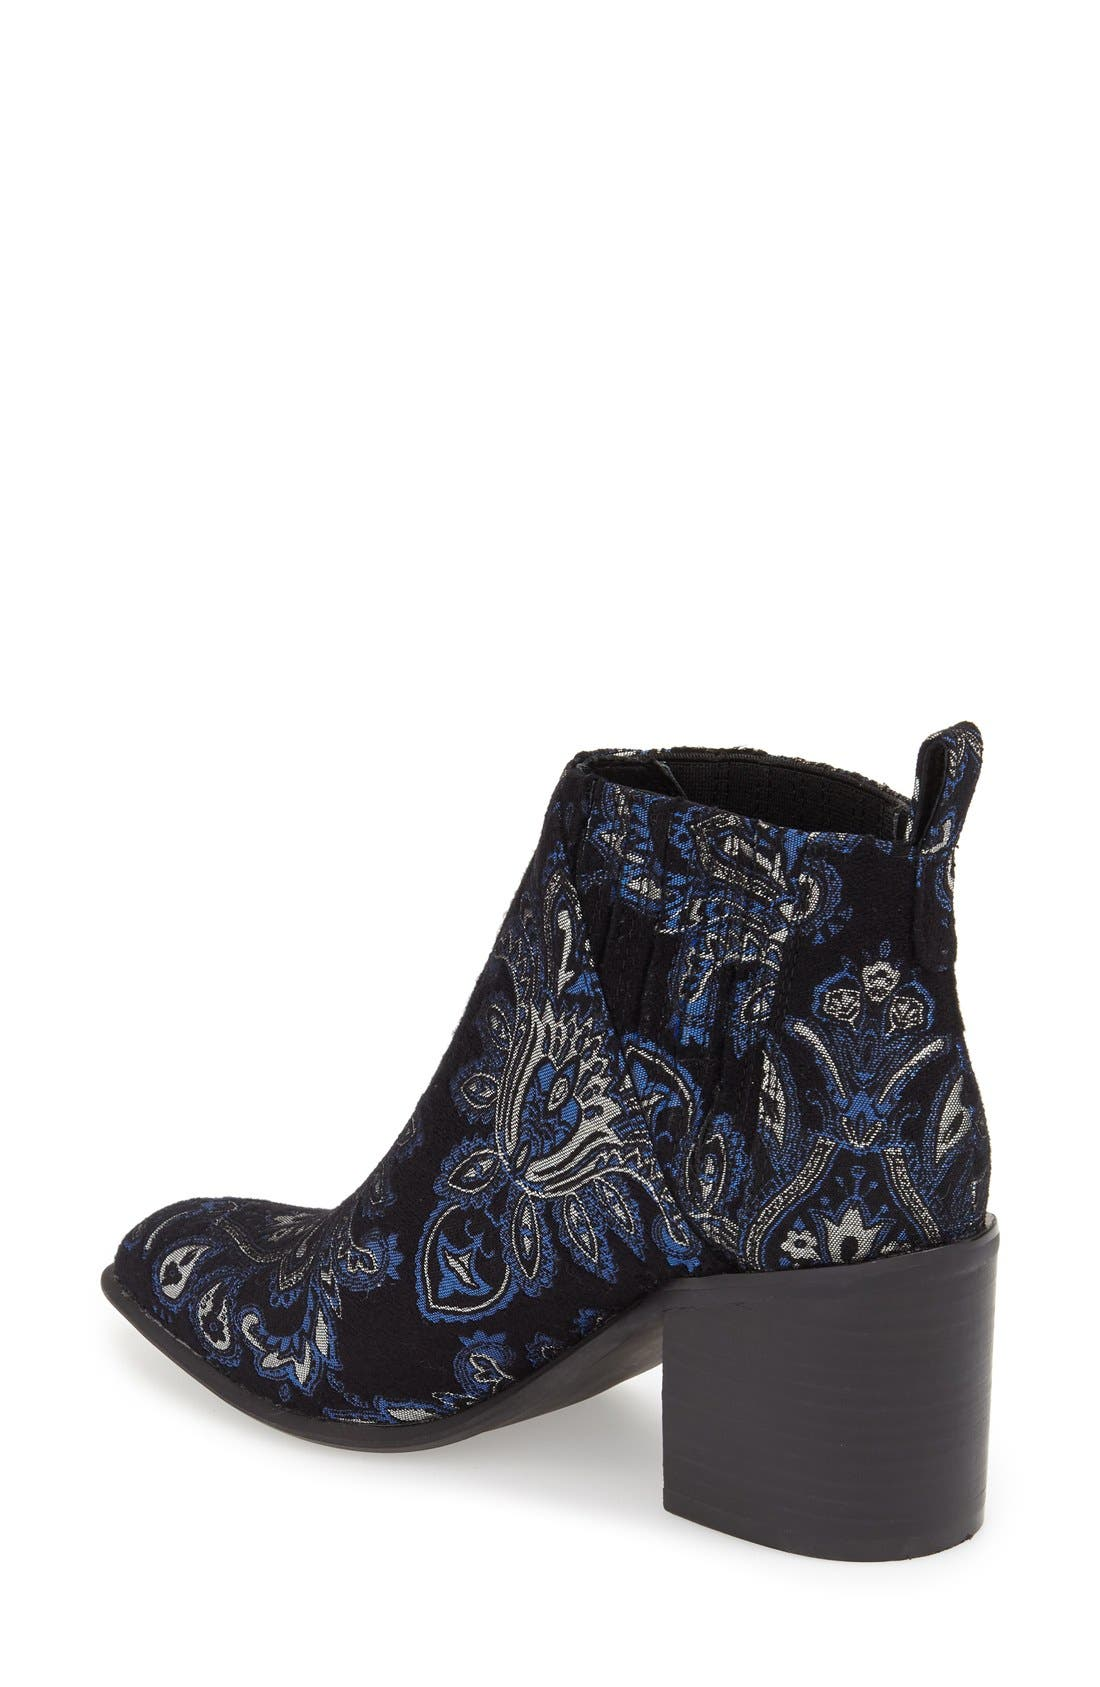 Alternate Image 2  - Jeffrey Campbell 'Viggio' Brocade Bootie (Women)